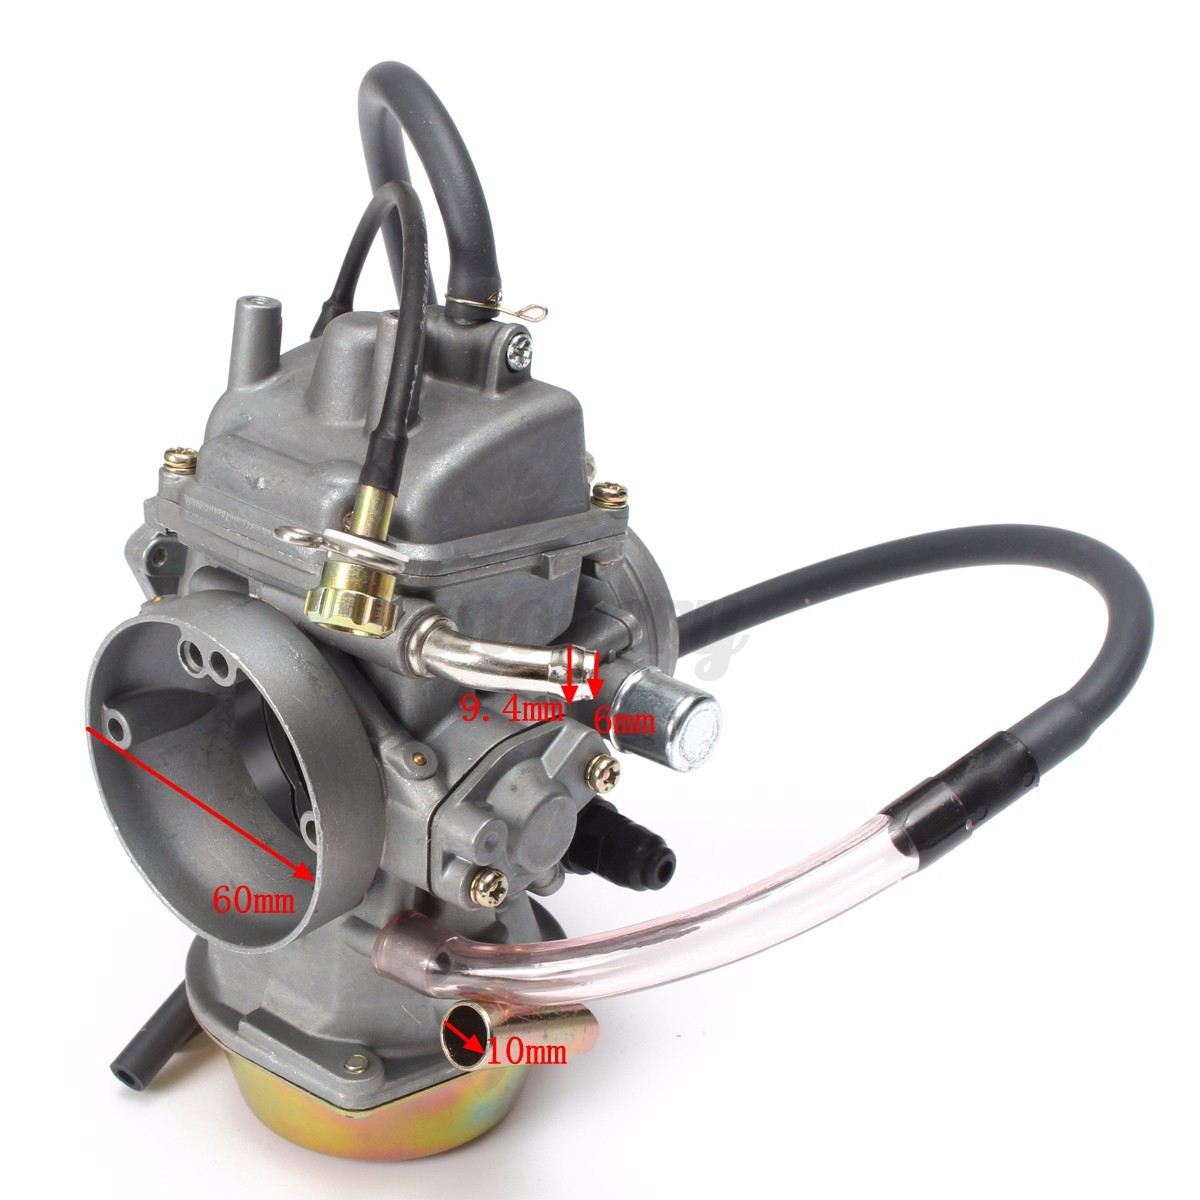 John Deere Service Advisor CCE in addition John Deere Replacement Fuel Pump Assembly Lg808656 additionally John Deere Ignition Switch AM133597 p 4757 additionally 91 Honda Accord Transmission Diagram additionally Elevators Escalators And Hoists. on cce wiring diagram